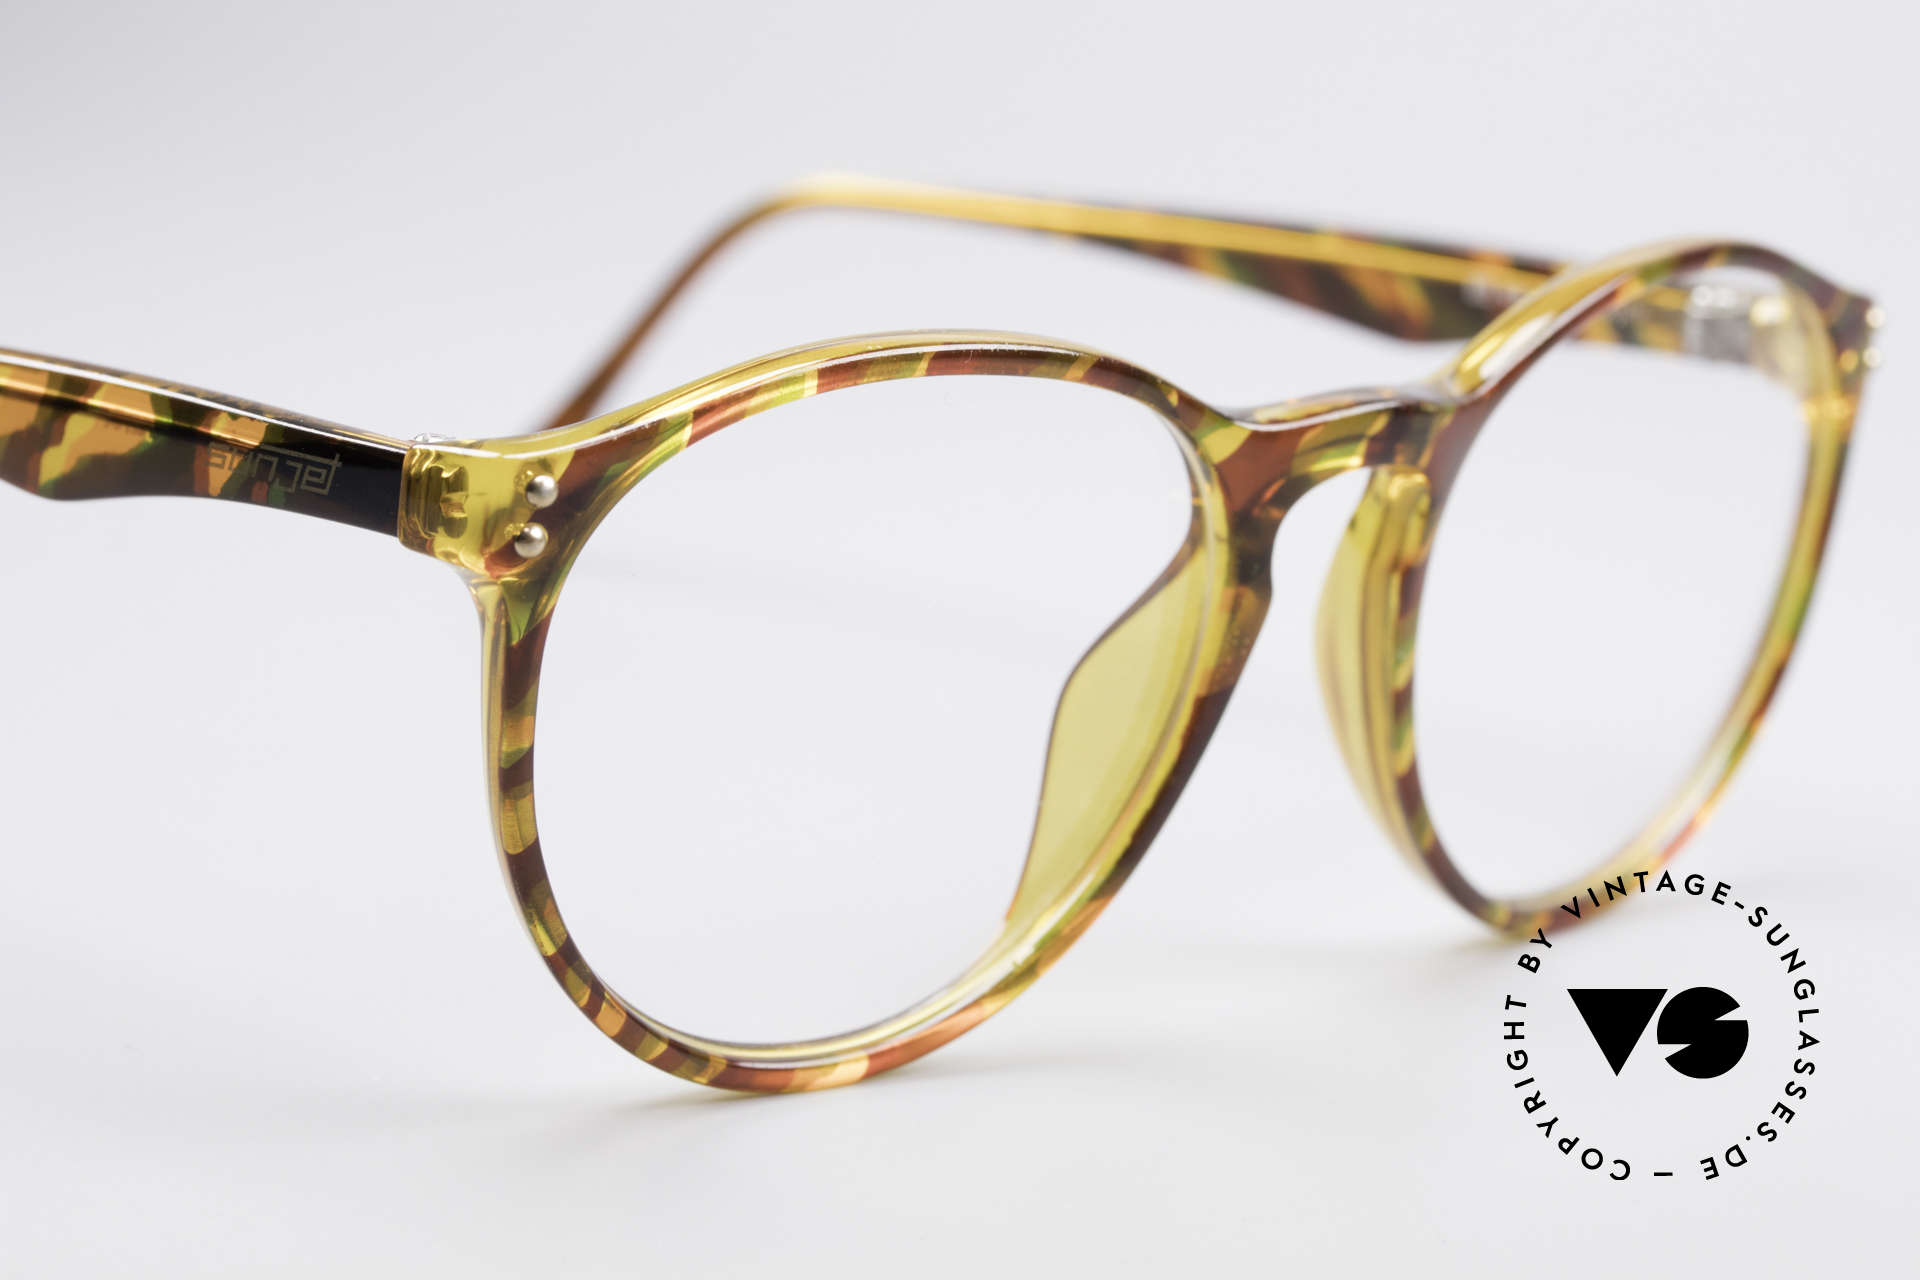 Carrera 5282 90's Panto Eyeglasses, unworn rarity from app. 1995 in SMALL-MEDIUM size, Made for Men and Women